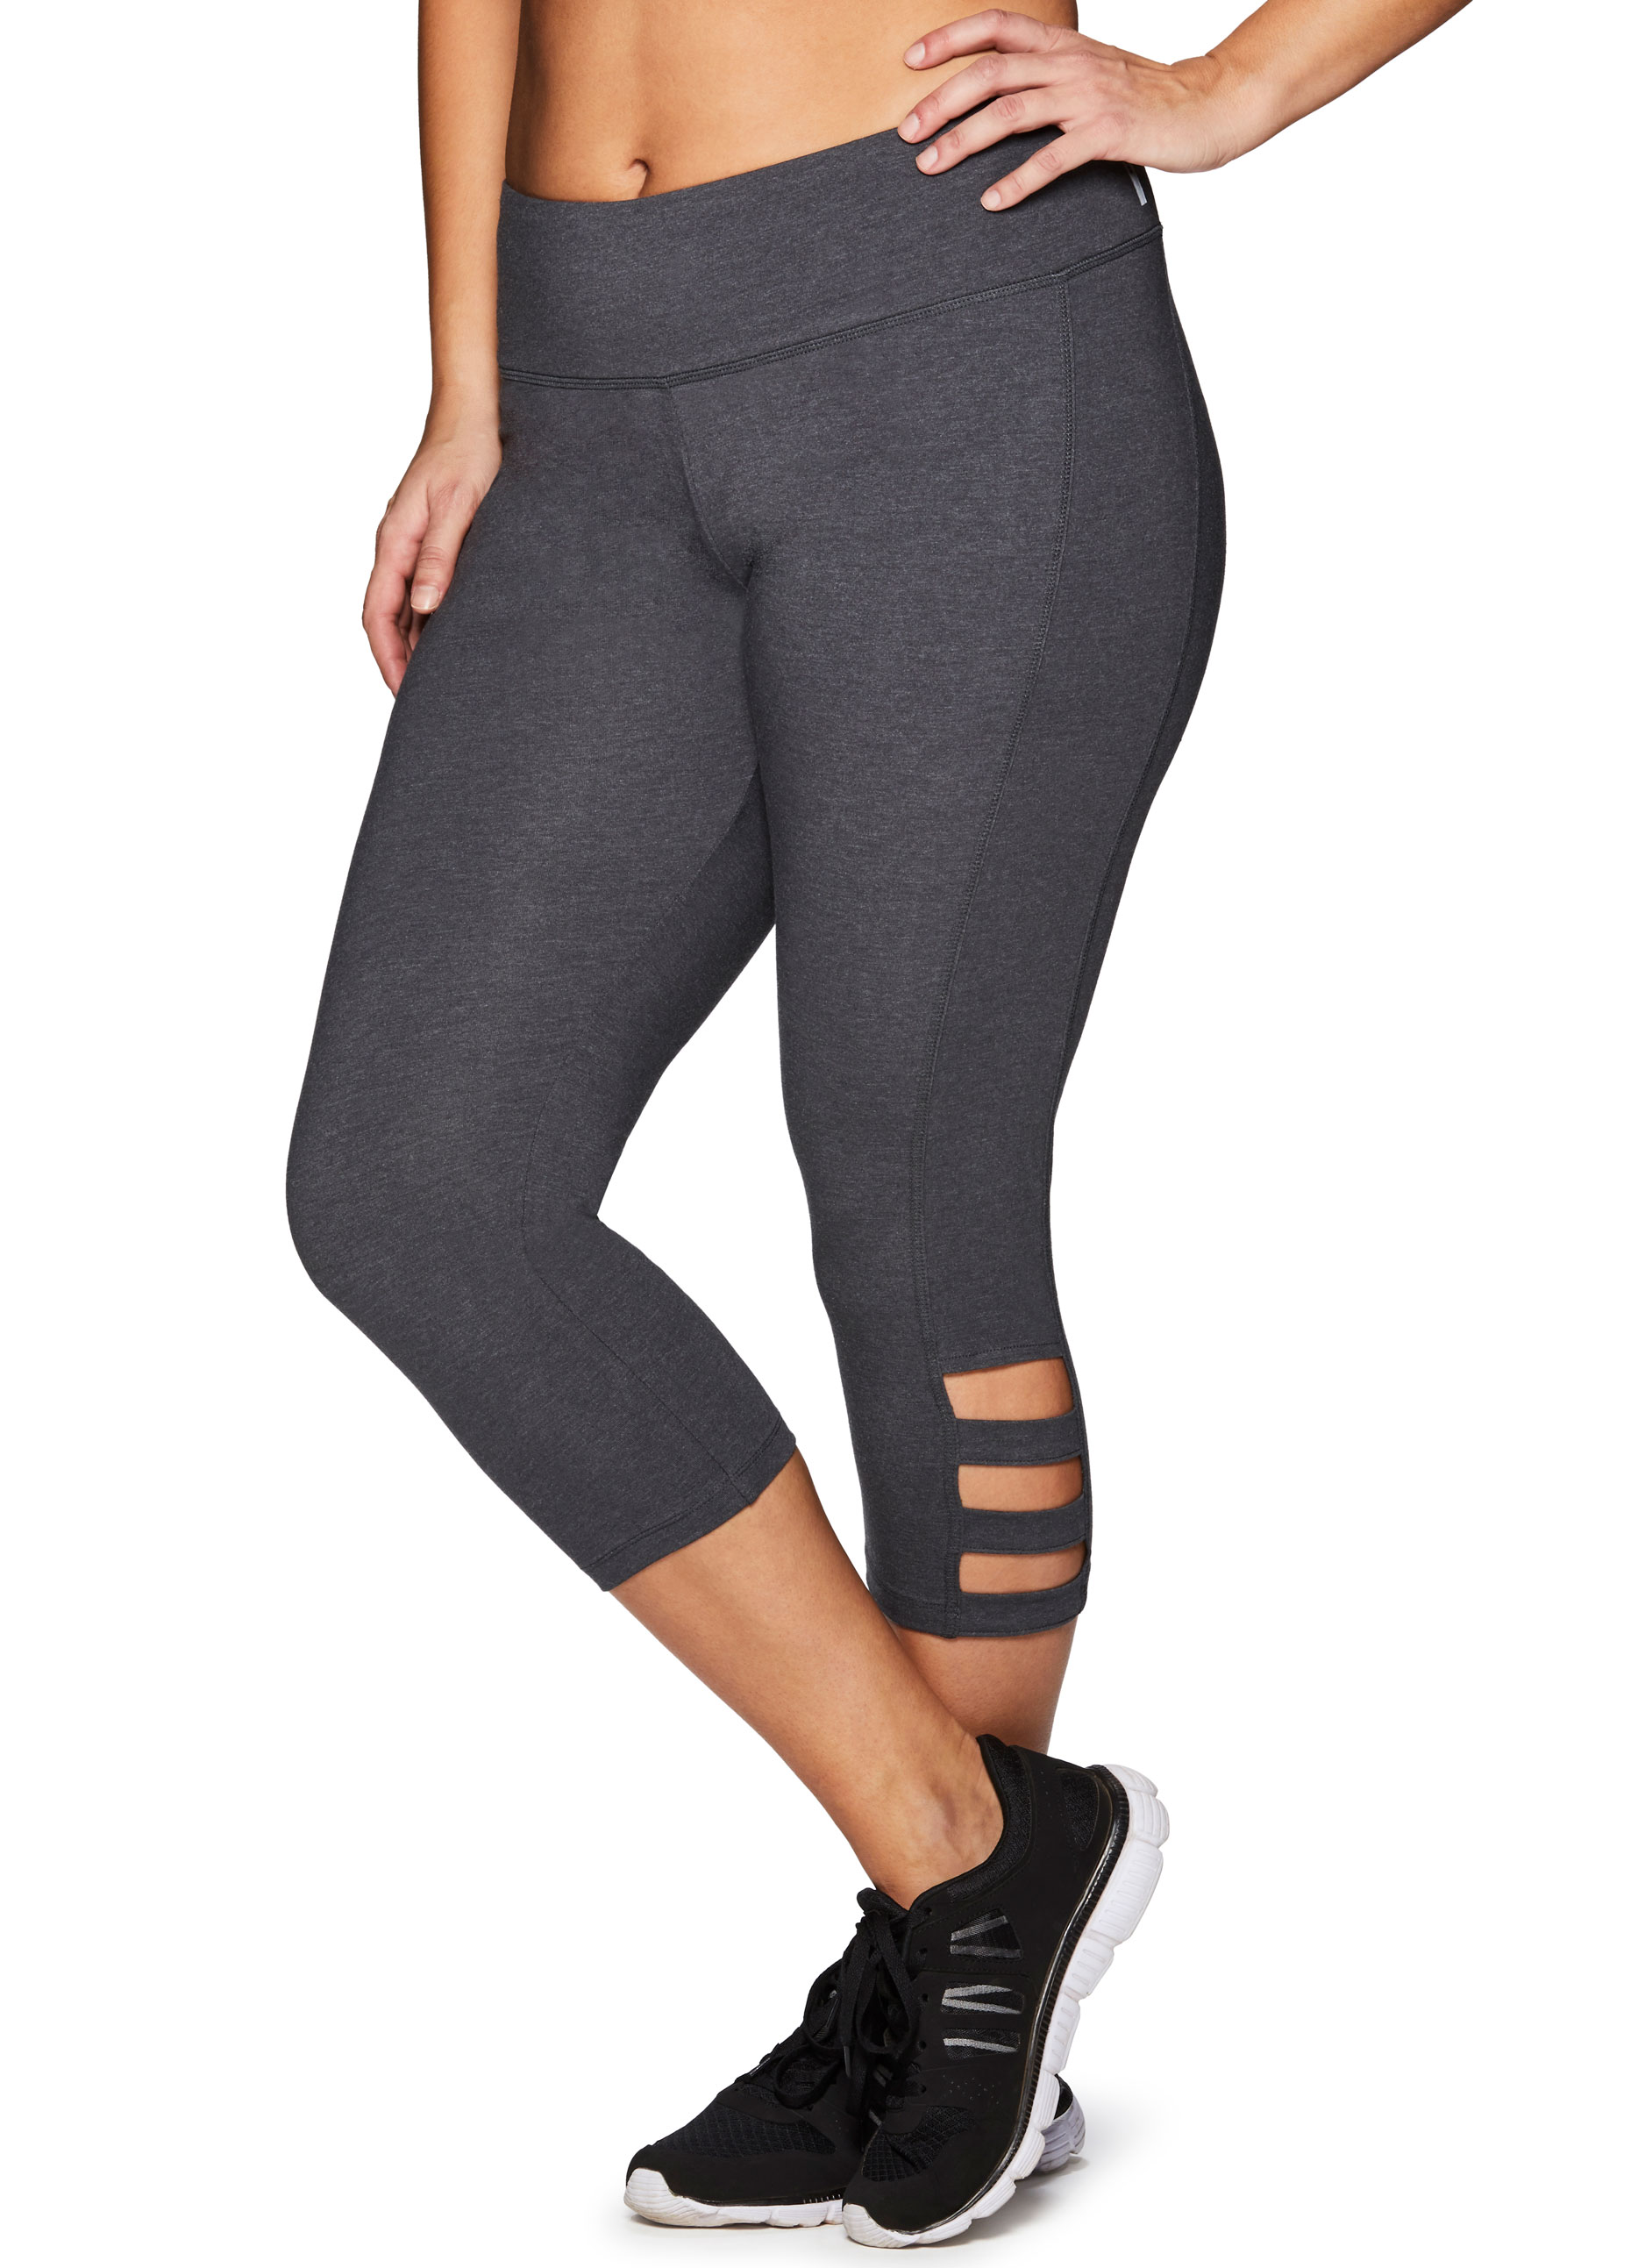 RBX Active Women's Plus Size  Cotton Spandex Fashion Workout Yoga Capri Leggings